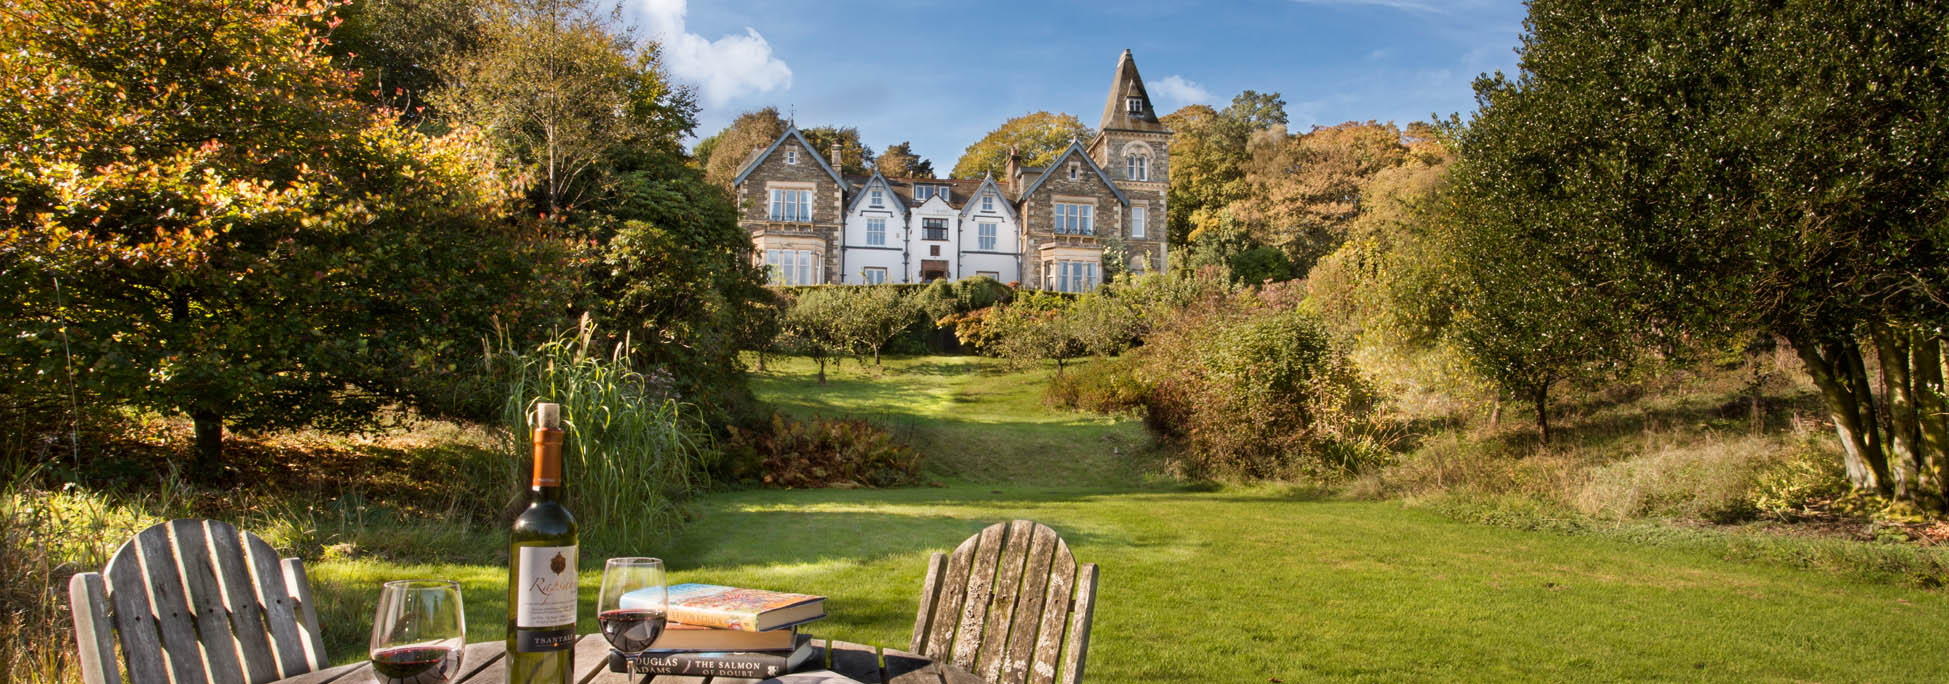 Yewfield is set in over 80 acres of grounds with lovely walks onto Tarn Hows